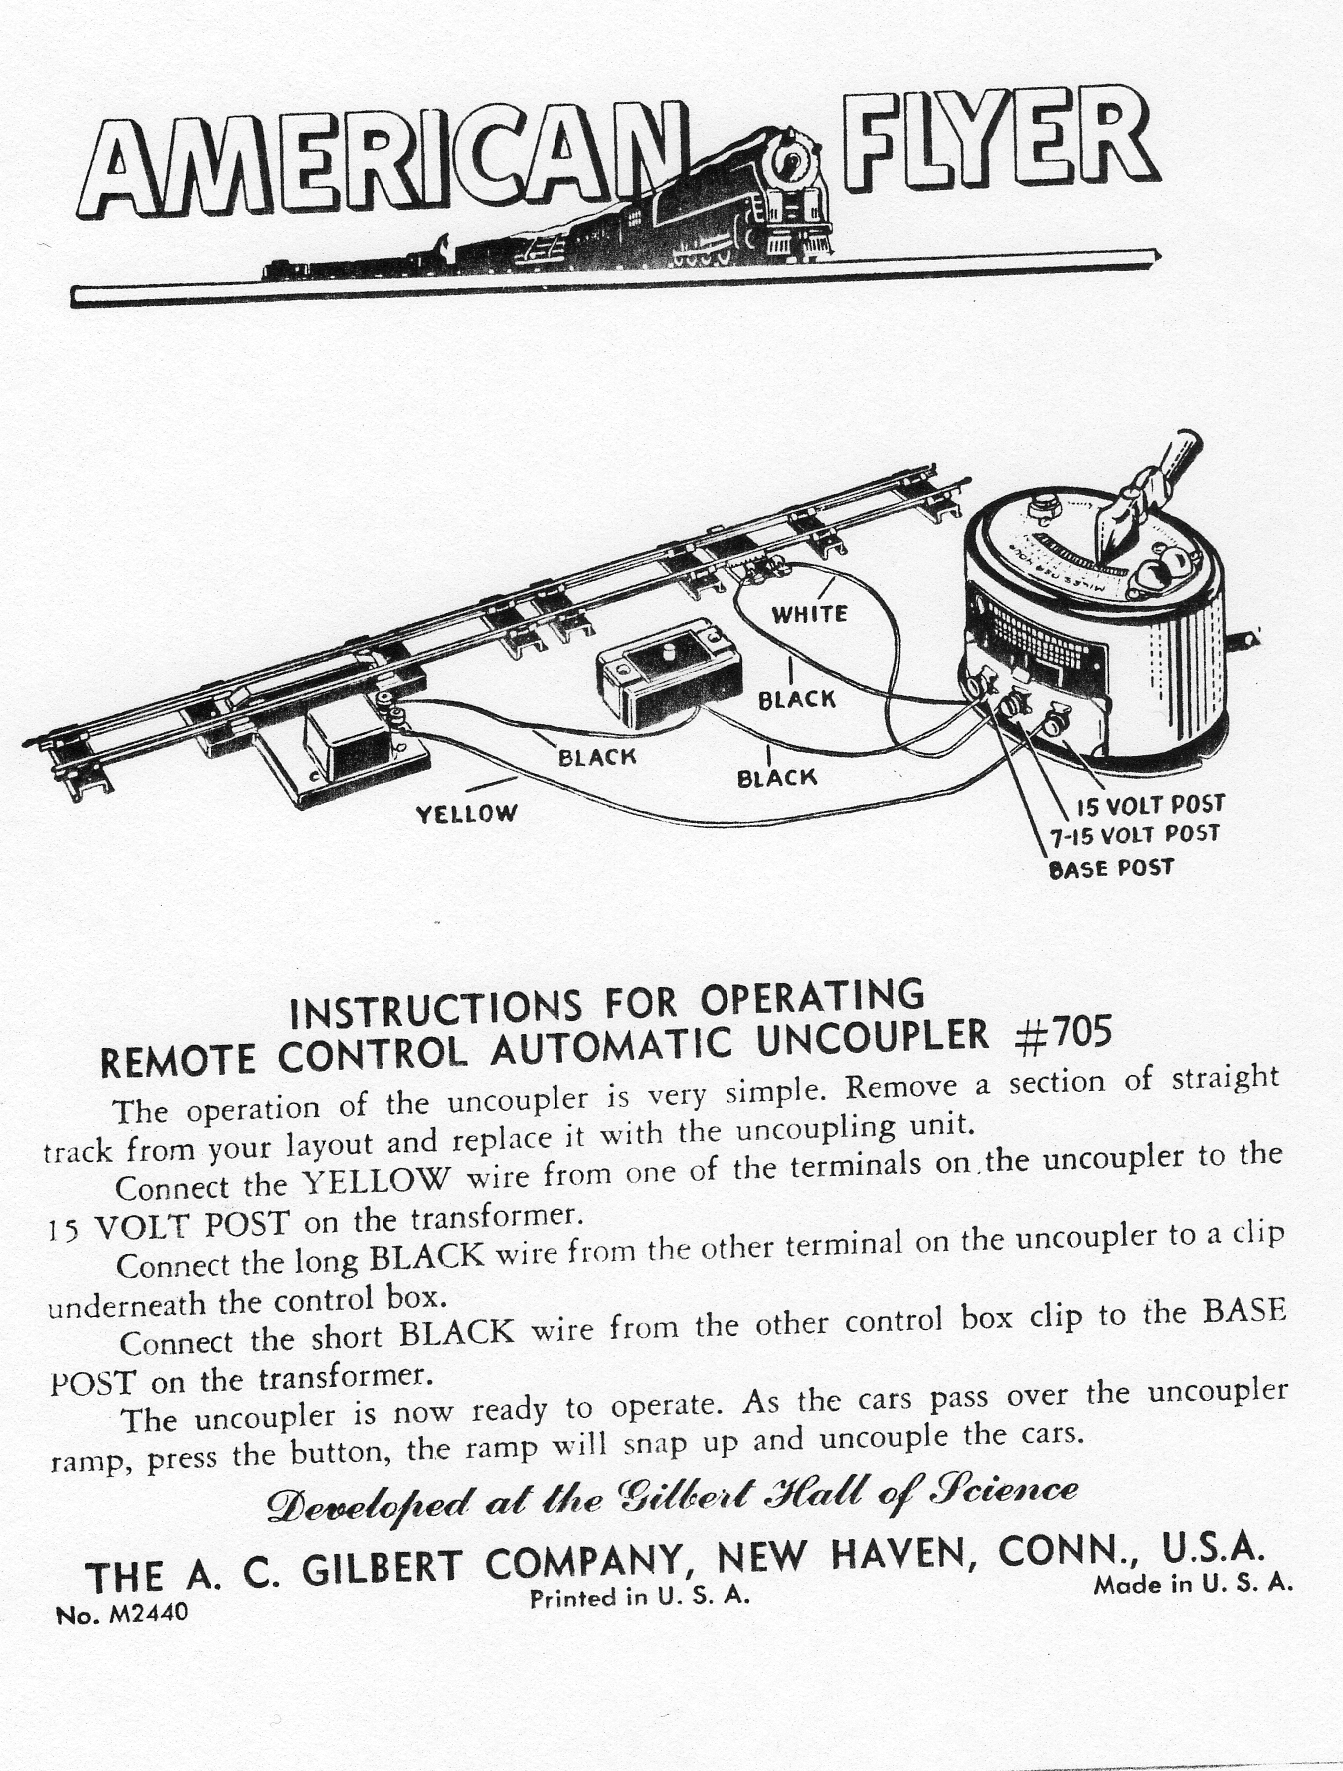 Instructions for Operating Remote Control Automatic Uncoupler No. 705